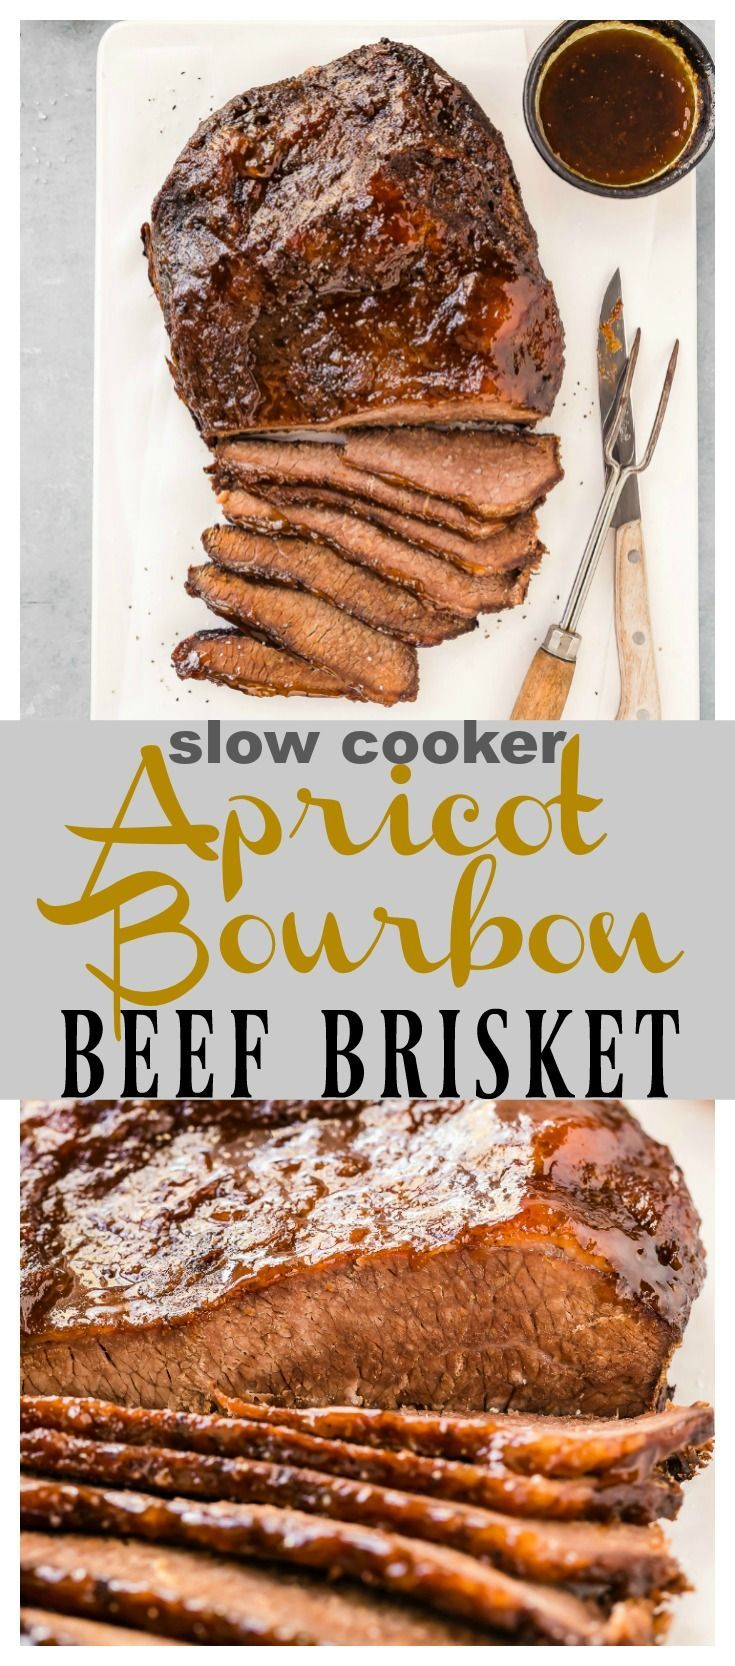 Slow Cooker Apricot Bourbon Beef Brisket [with recipe video]   Ultra tender, flavor packed, melt in your mouth brisket slathered with a sticky, sweet apricot bourbon glaze. Set it and forget it in the crock pot, then be prepared to fall head over heels in love with this brisket! It's easy to prepare, bursting with flavor and perfect for entertaining or summer BBQ's! #slowcooker #crockpot #easy #brisket